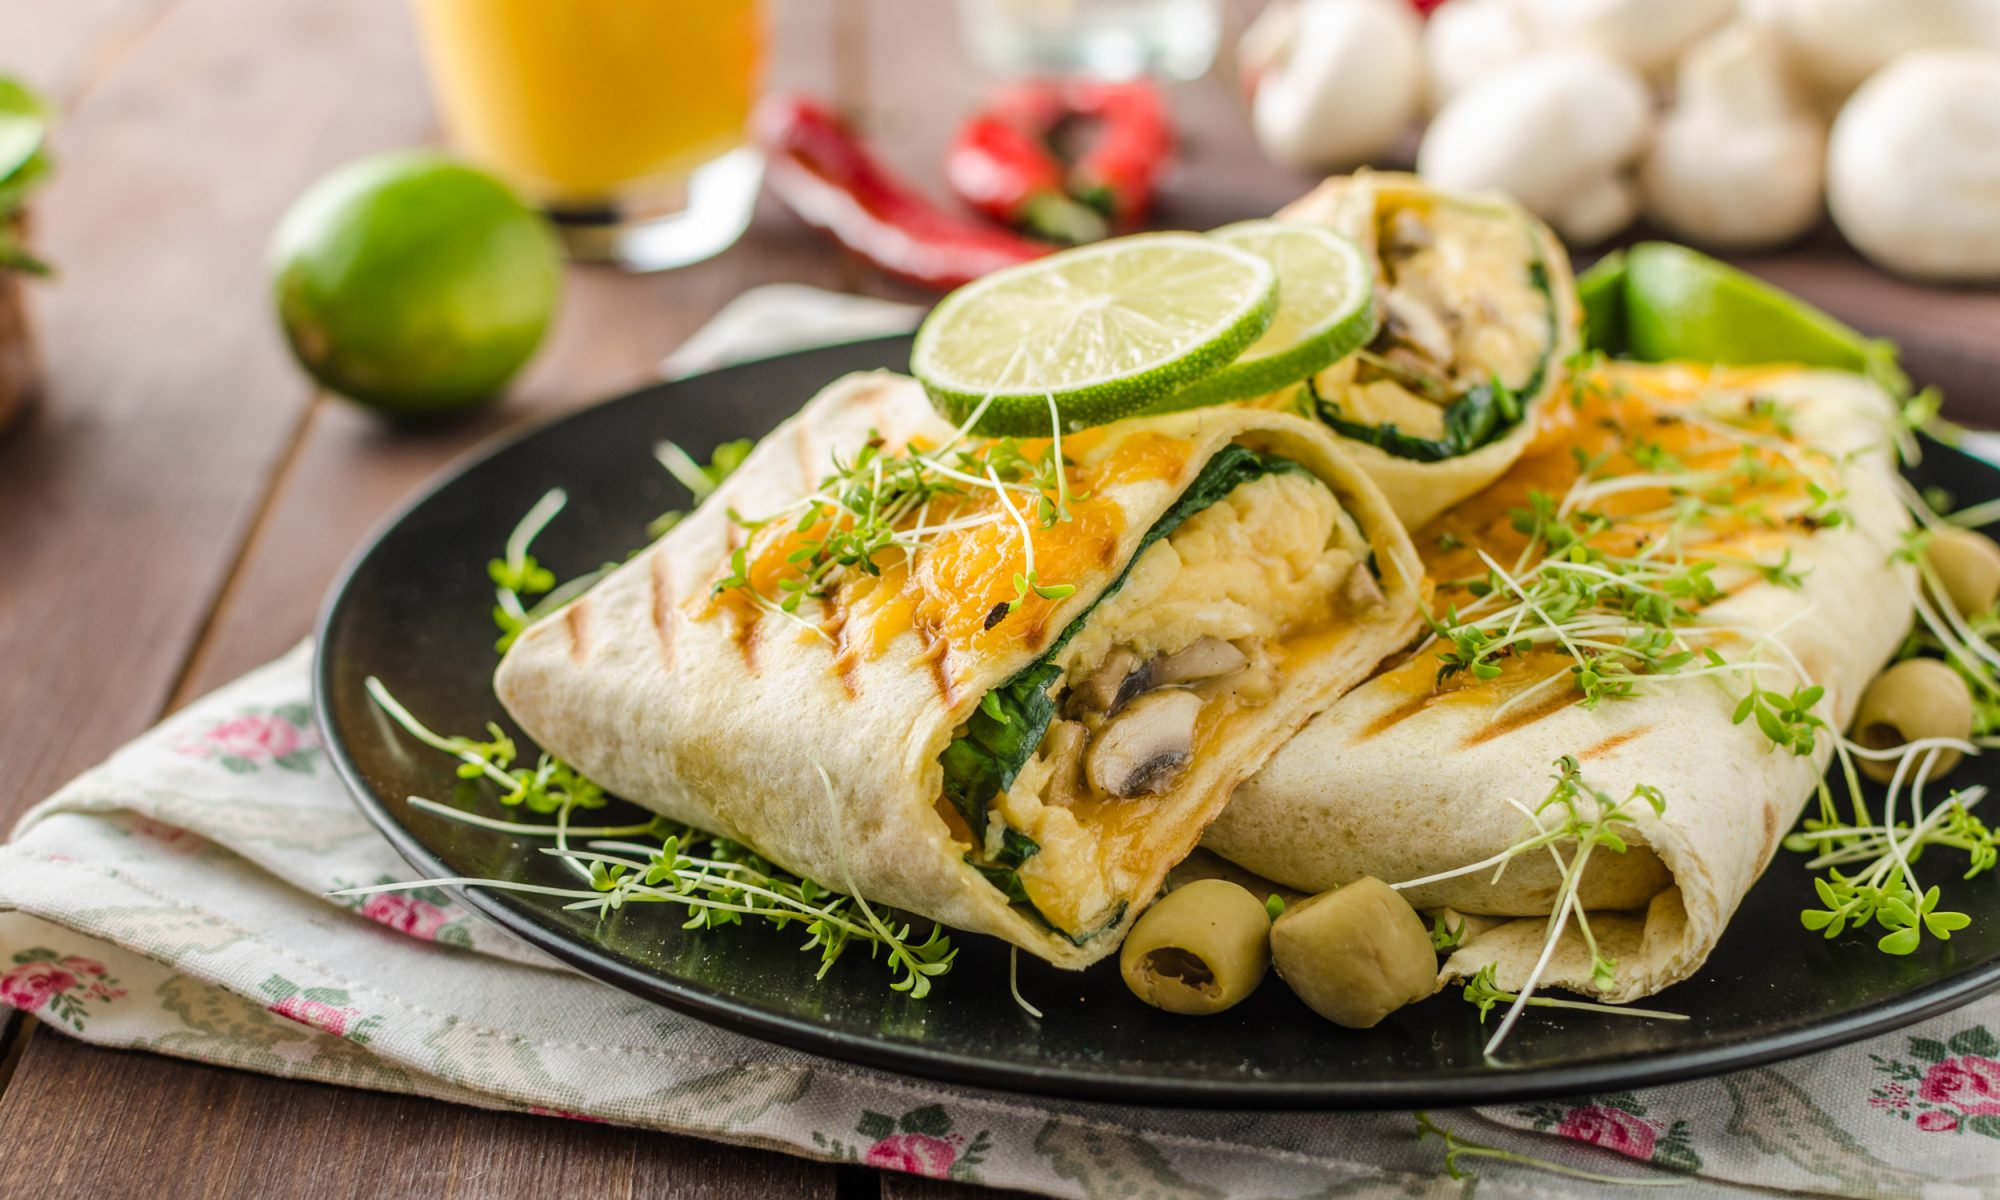 Make-Ahead Breakfast Burritos Are What Stand Between You and Despair This Winter